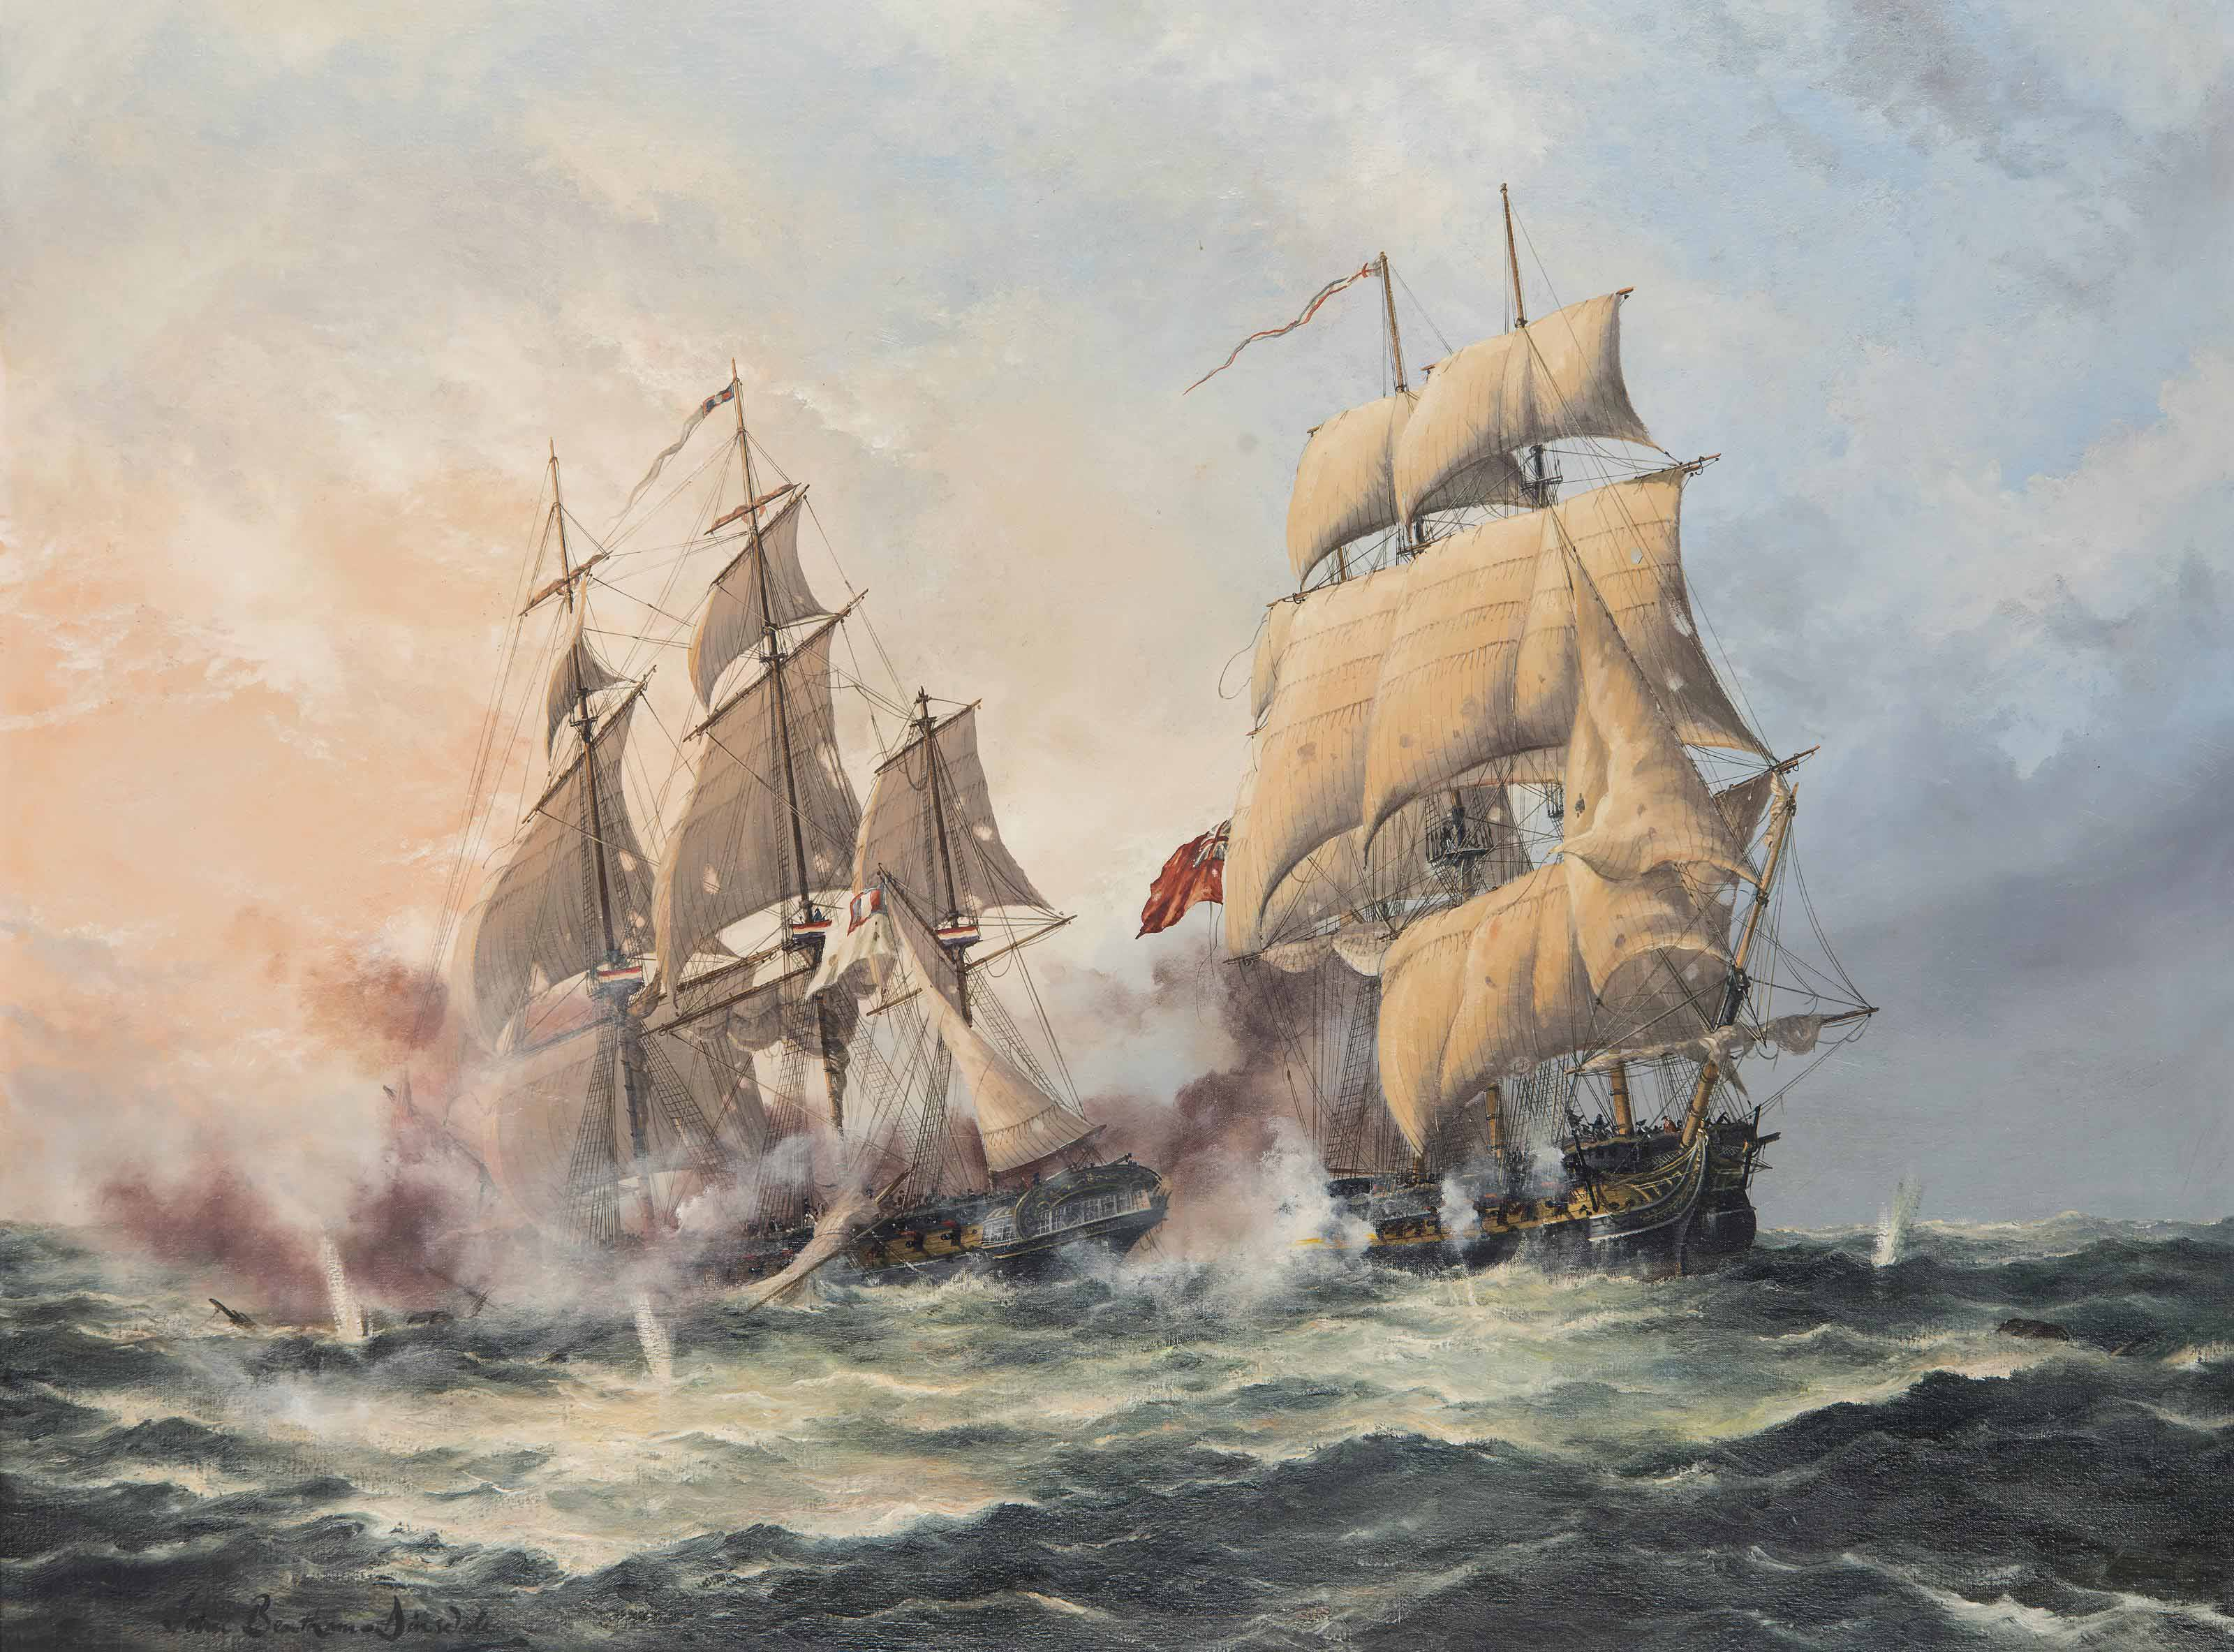 H.M.S. Crescent, under the command of Captain James Saumarez, capturing the French frigate Réunion off Cherbourg, 20 October 1793